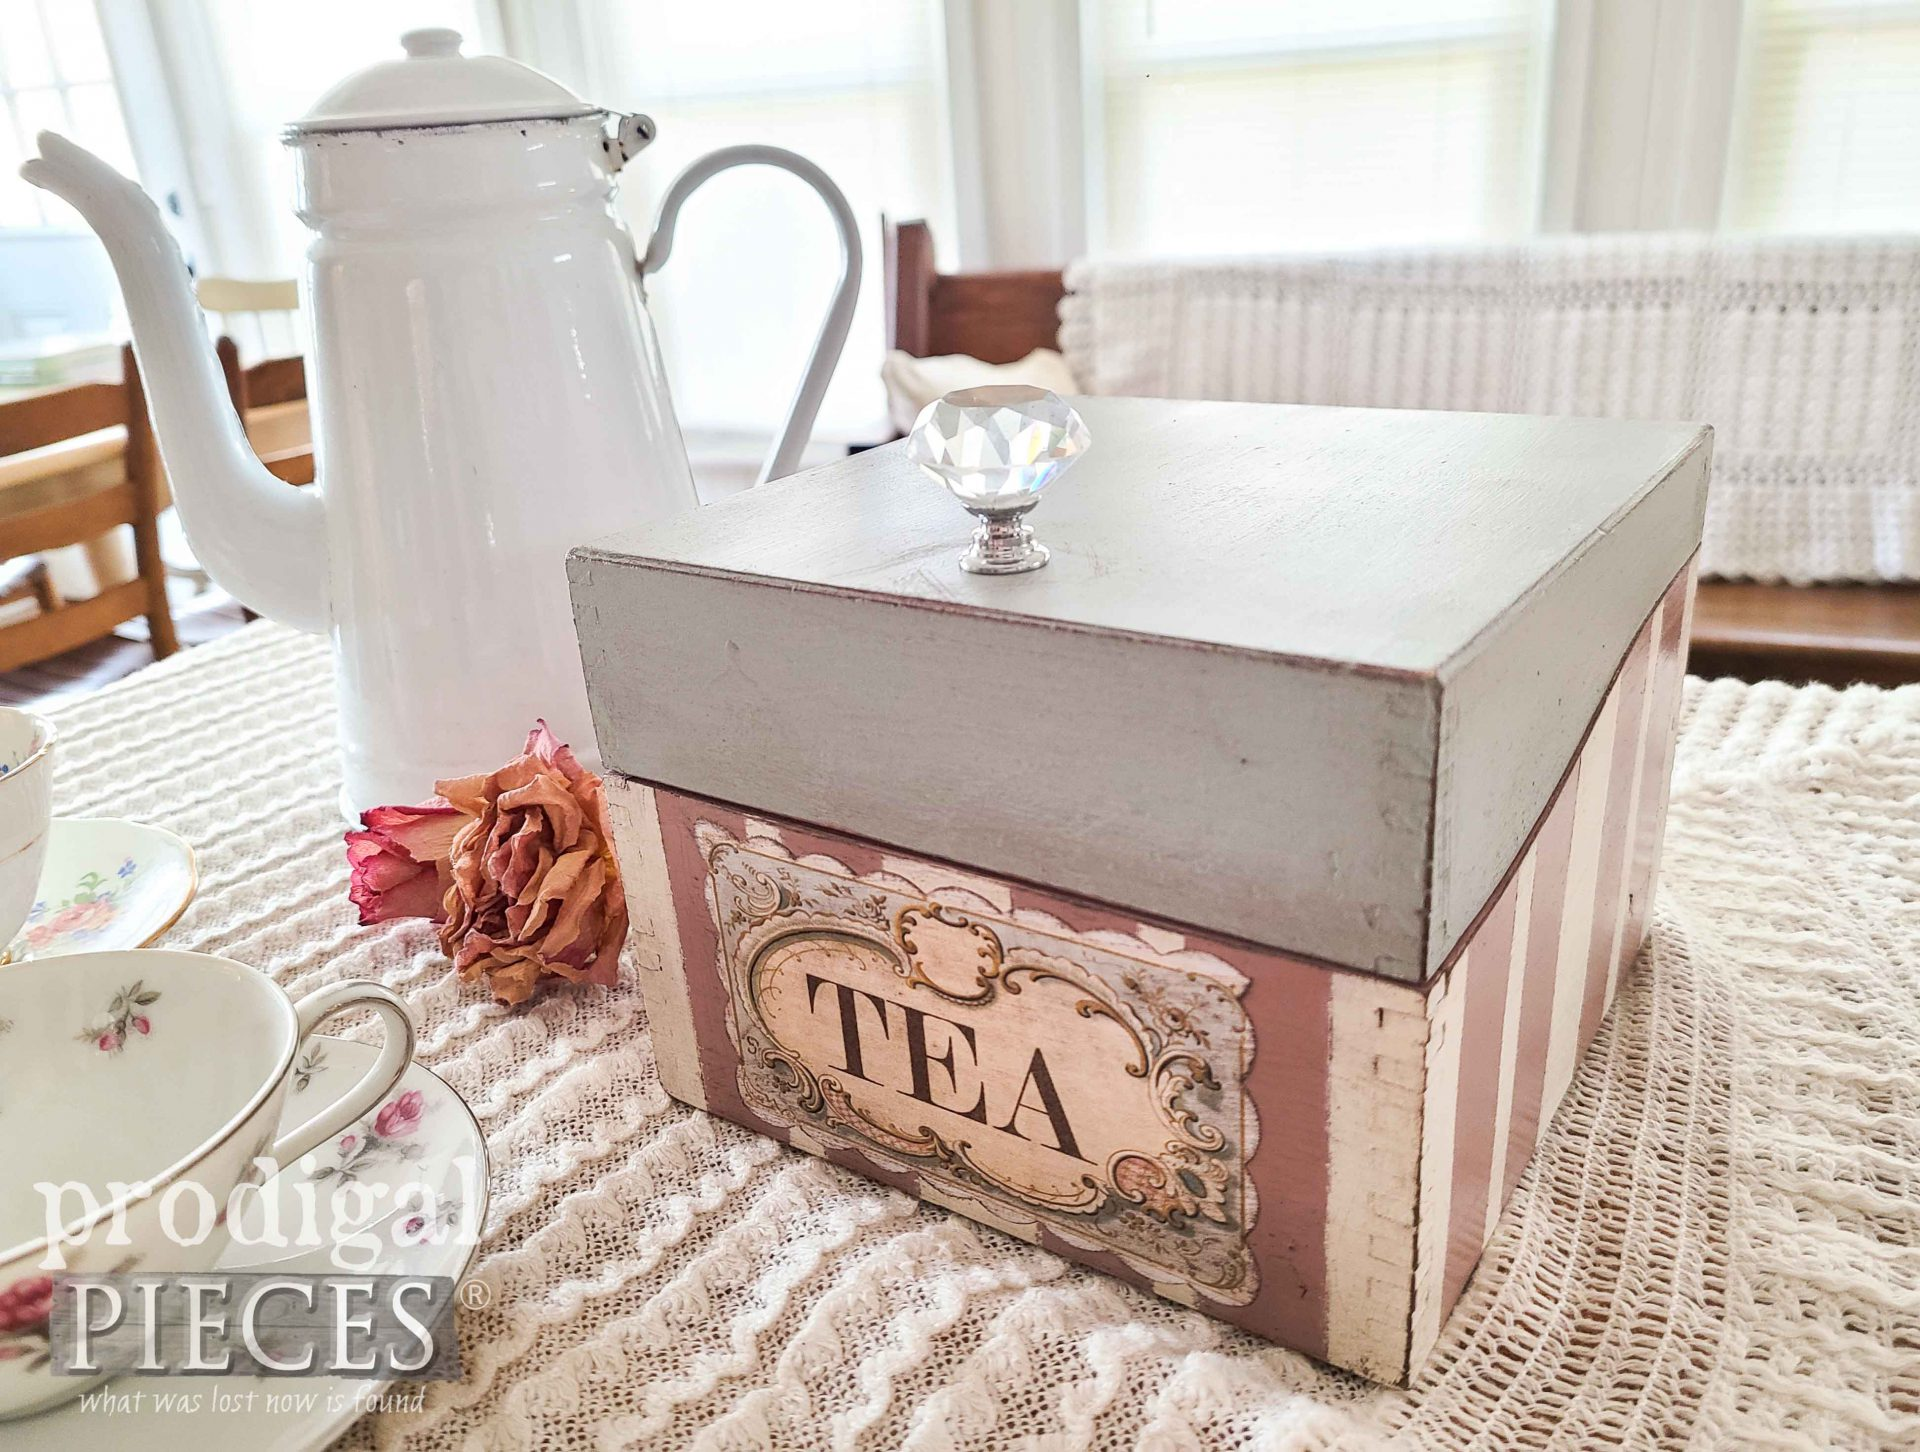 DIY Shabby Chic Decoupage Vintage Tea Box by Larissa of Prodigal Pieces | prodigalpieces.com #prodigalpieces #vintage #home #shabbychic